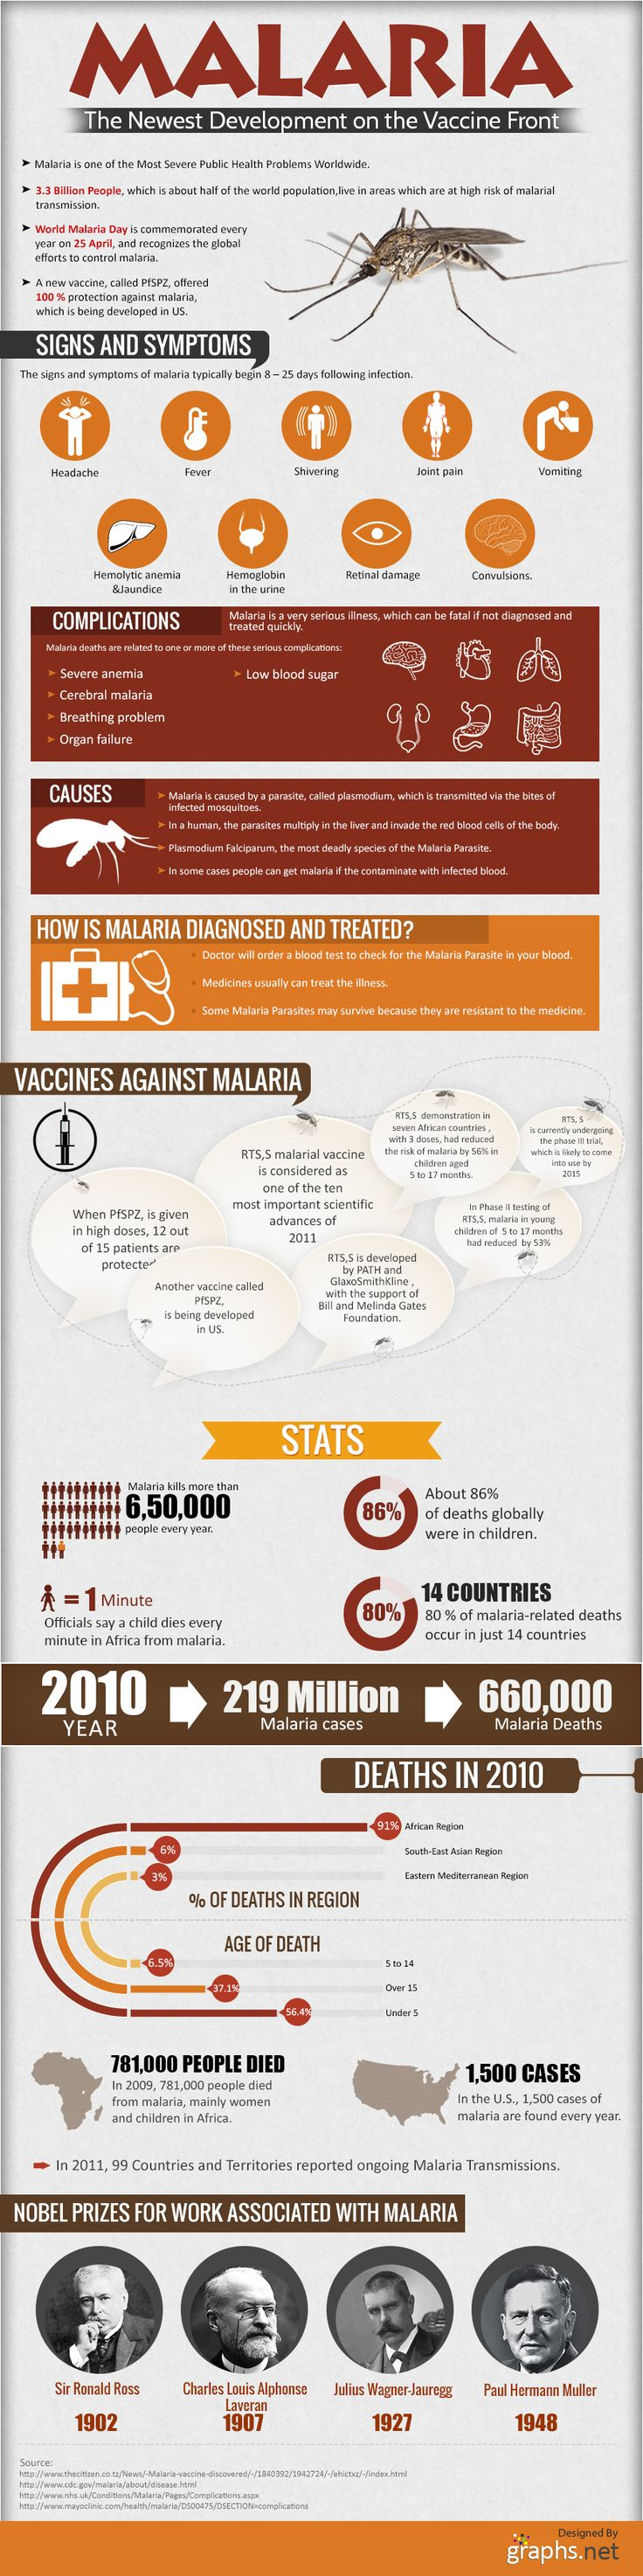 The info graphic depicts signs and symptoms of malaria, prevention and vaccine for malaria, Stats, causes and complications of malaria.